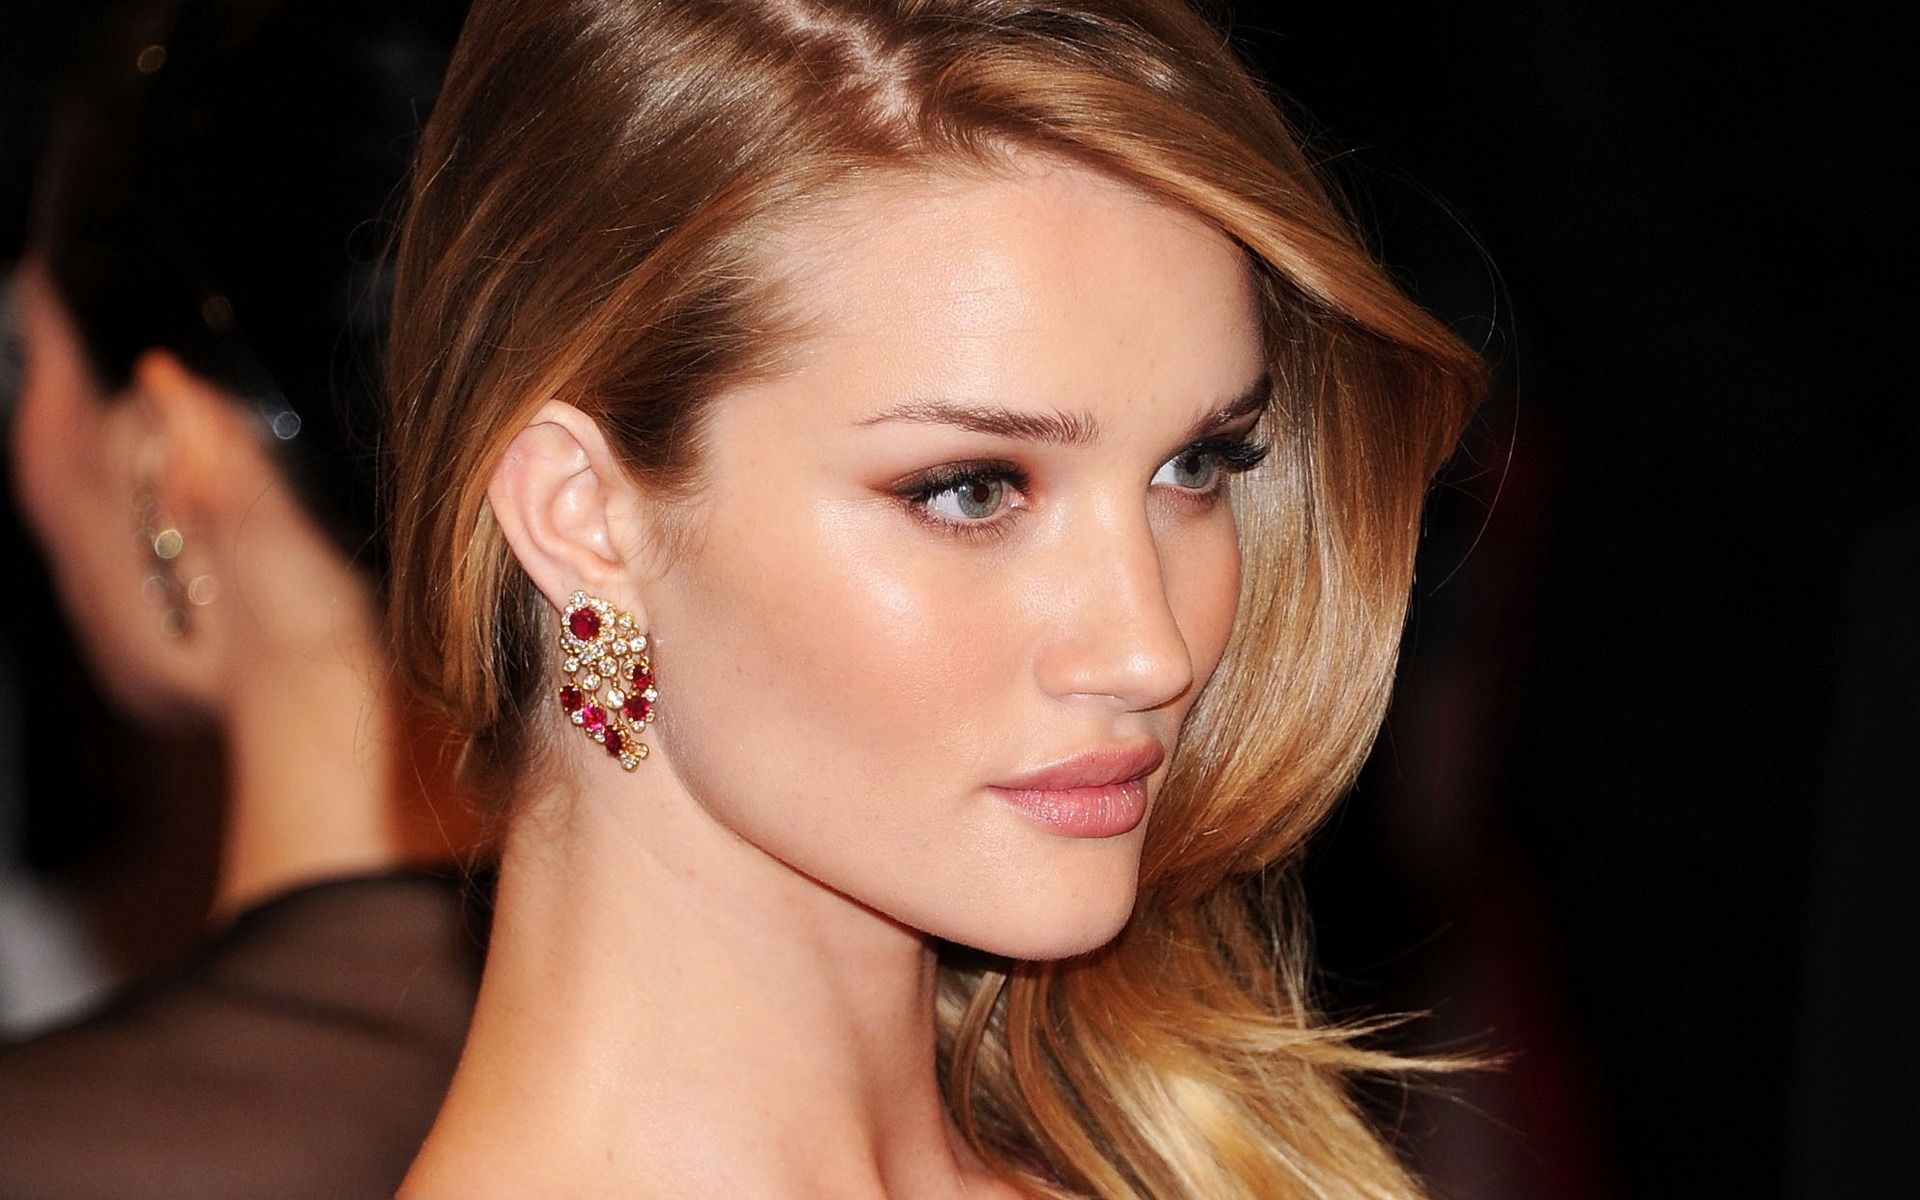 Rosie Huntington-Whiteley New Face Of ModelCo - Breakfast ... Rosie Huntington Whiteley Makeup